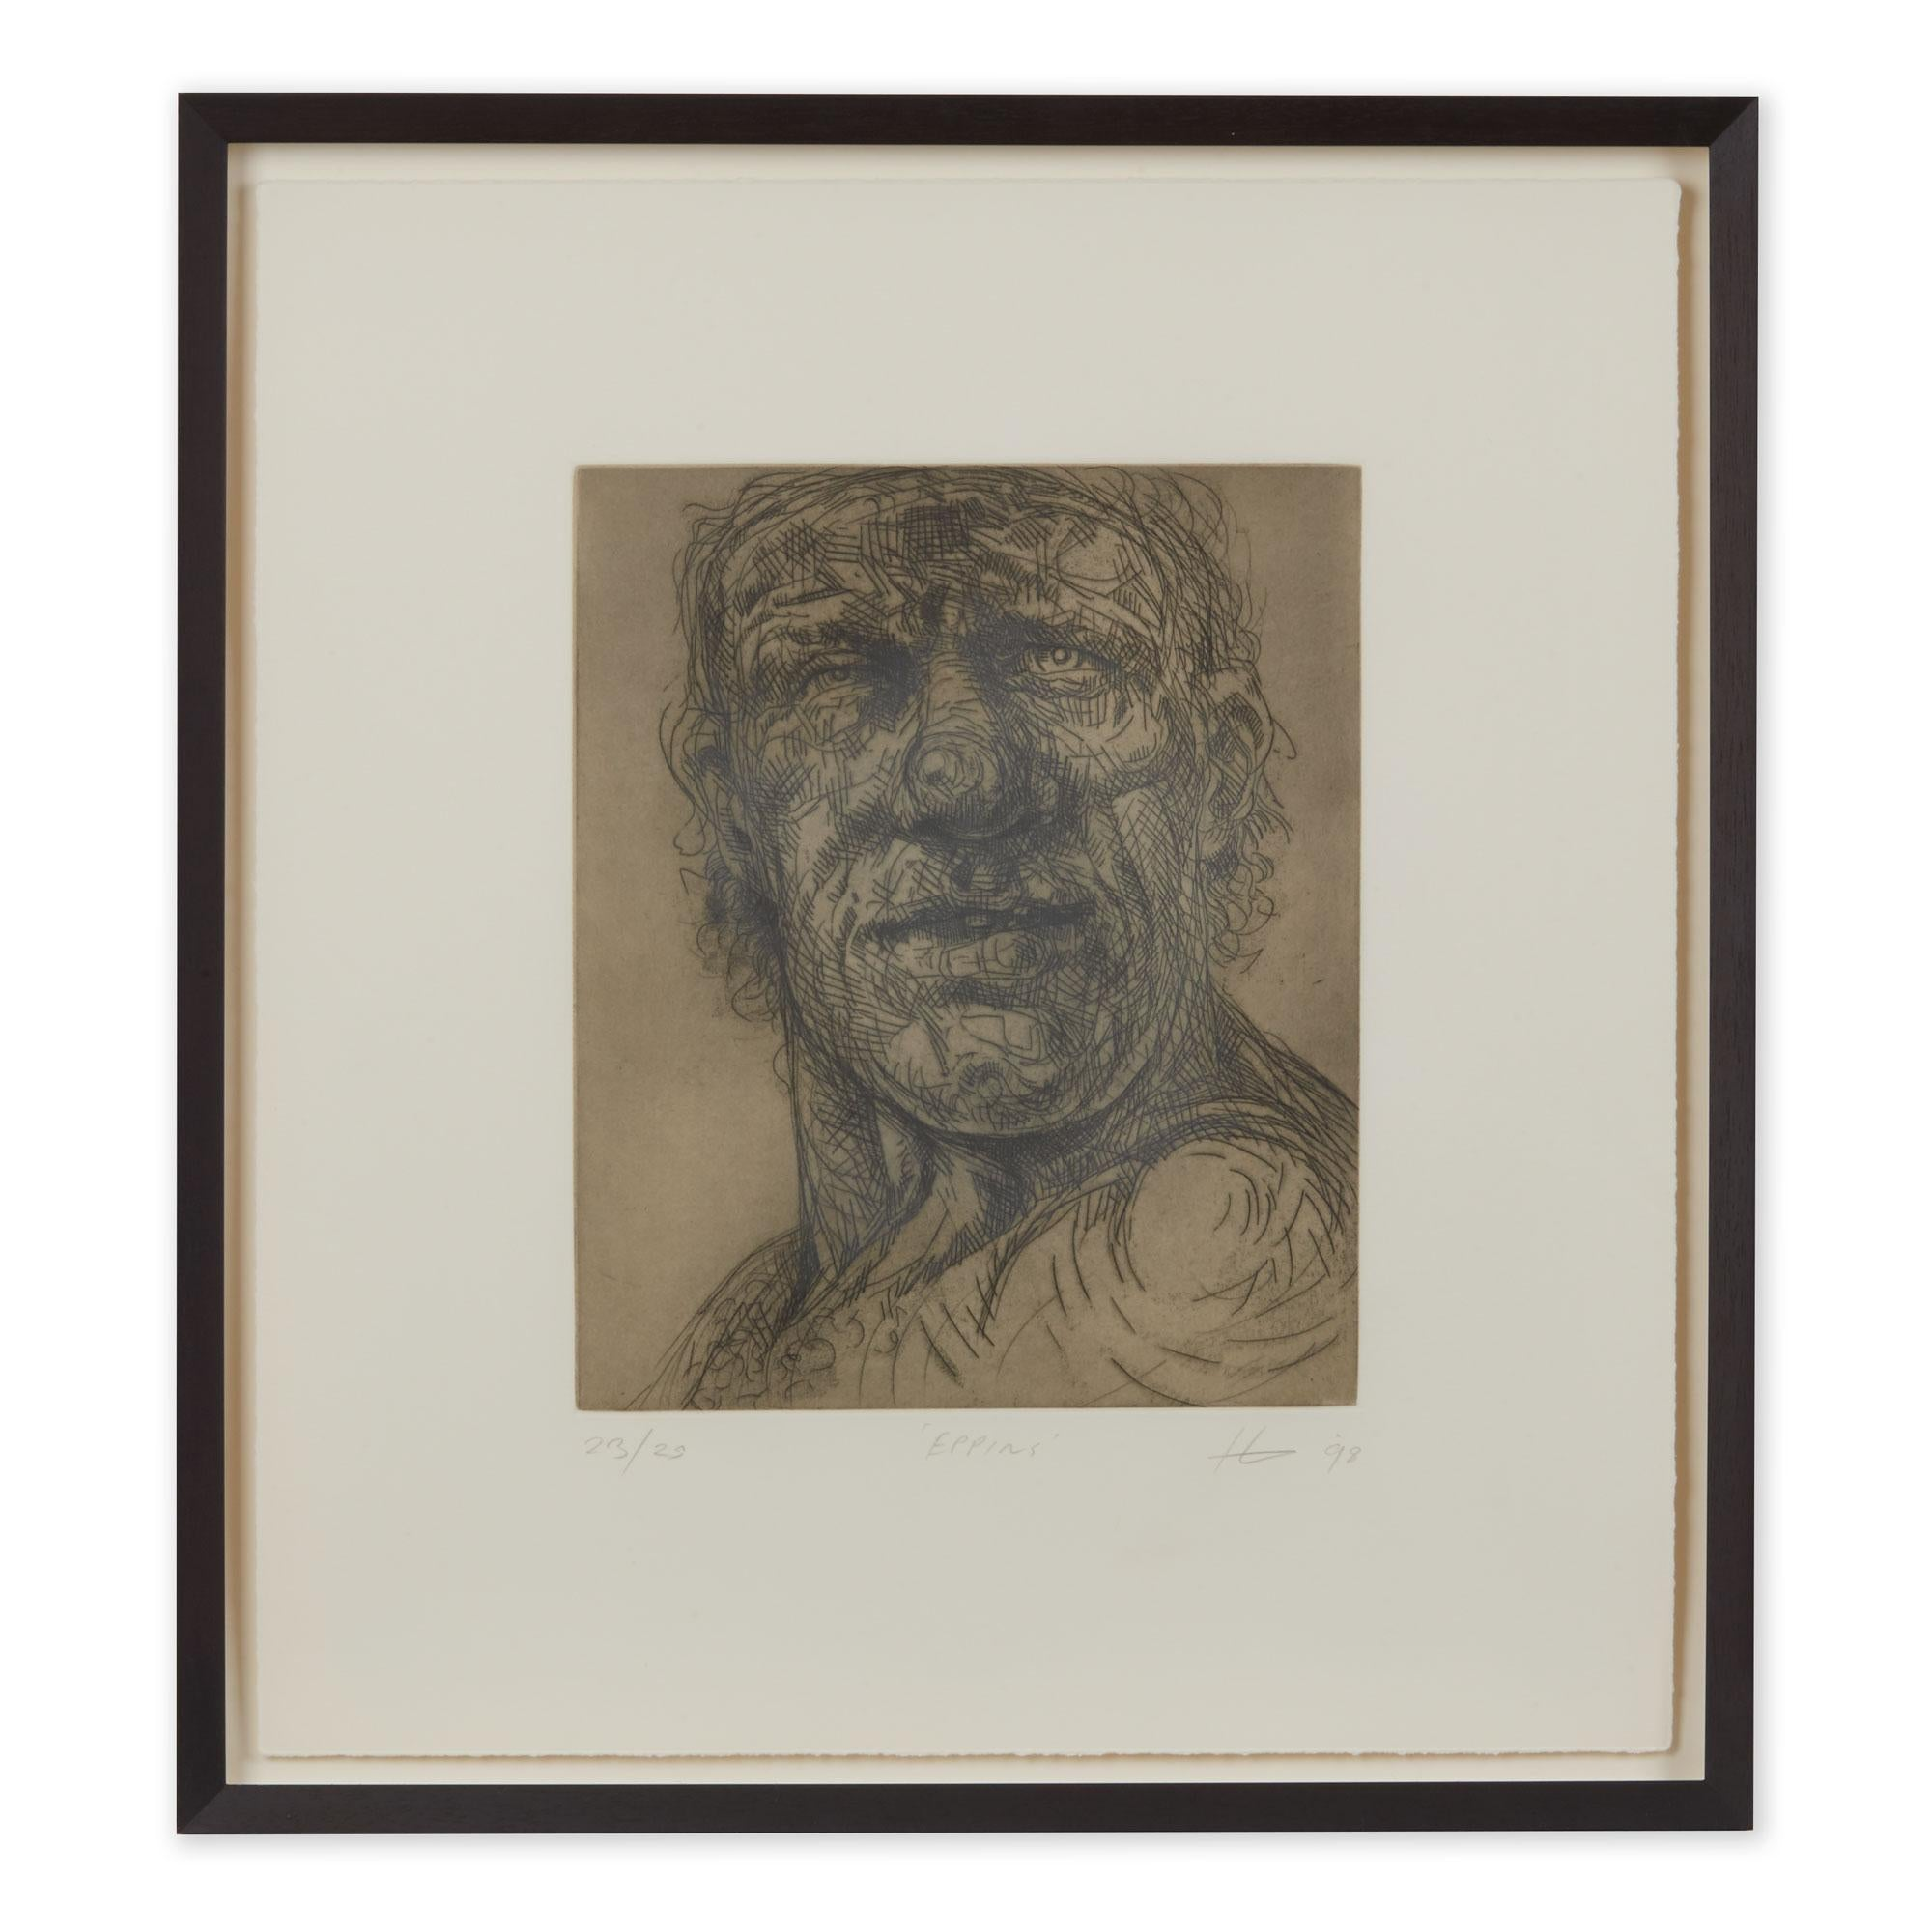 Peter Howson Underground Series Framed Epping Print, 1998